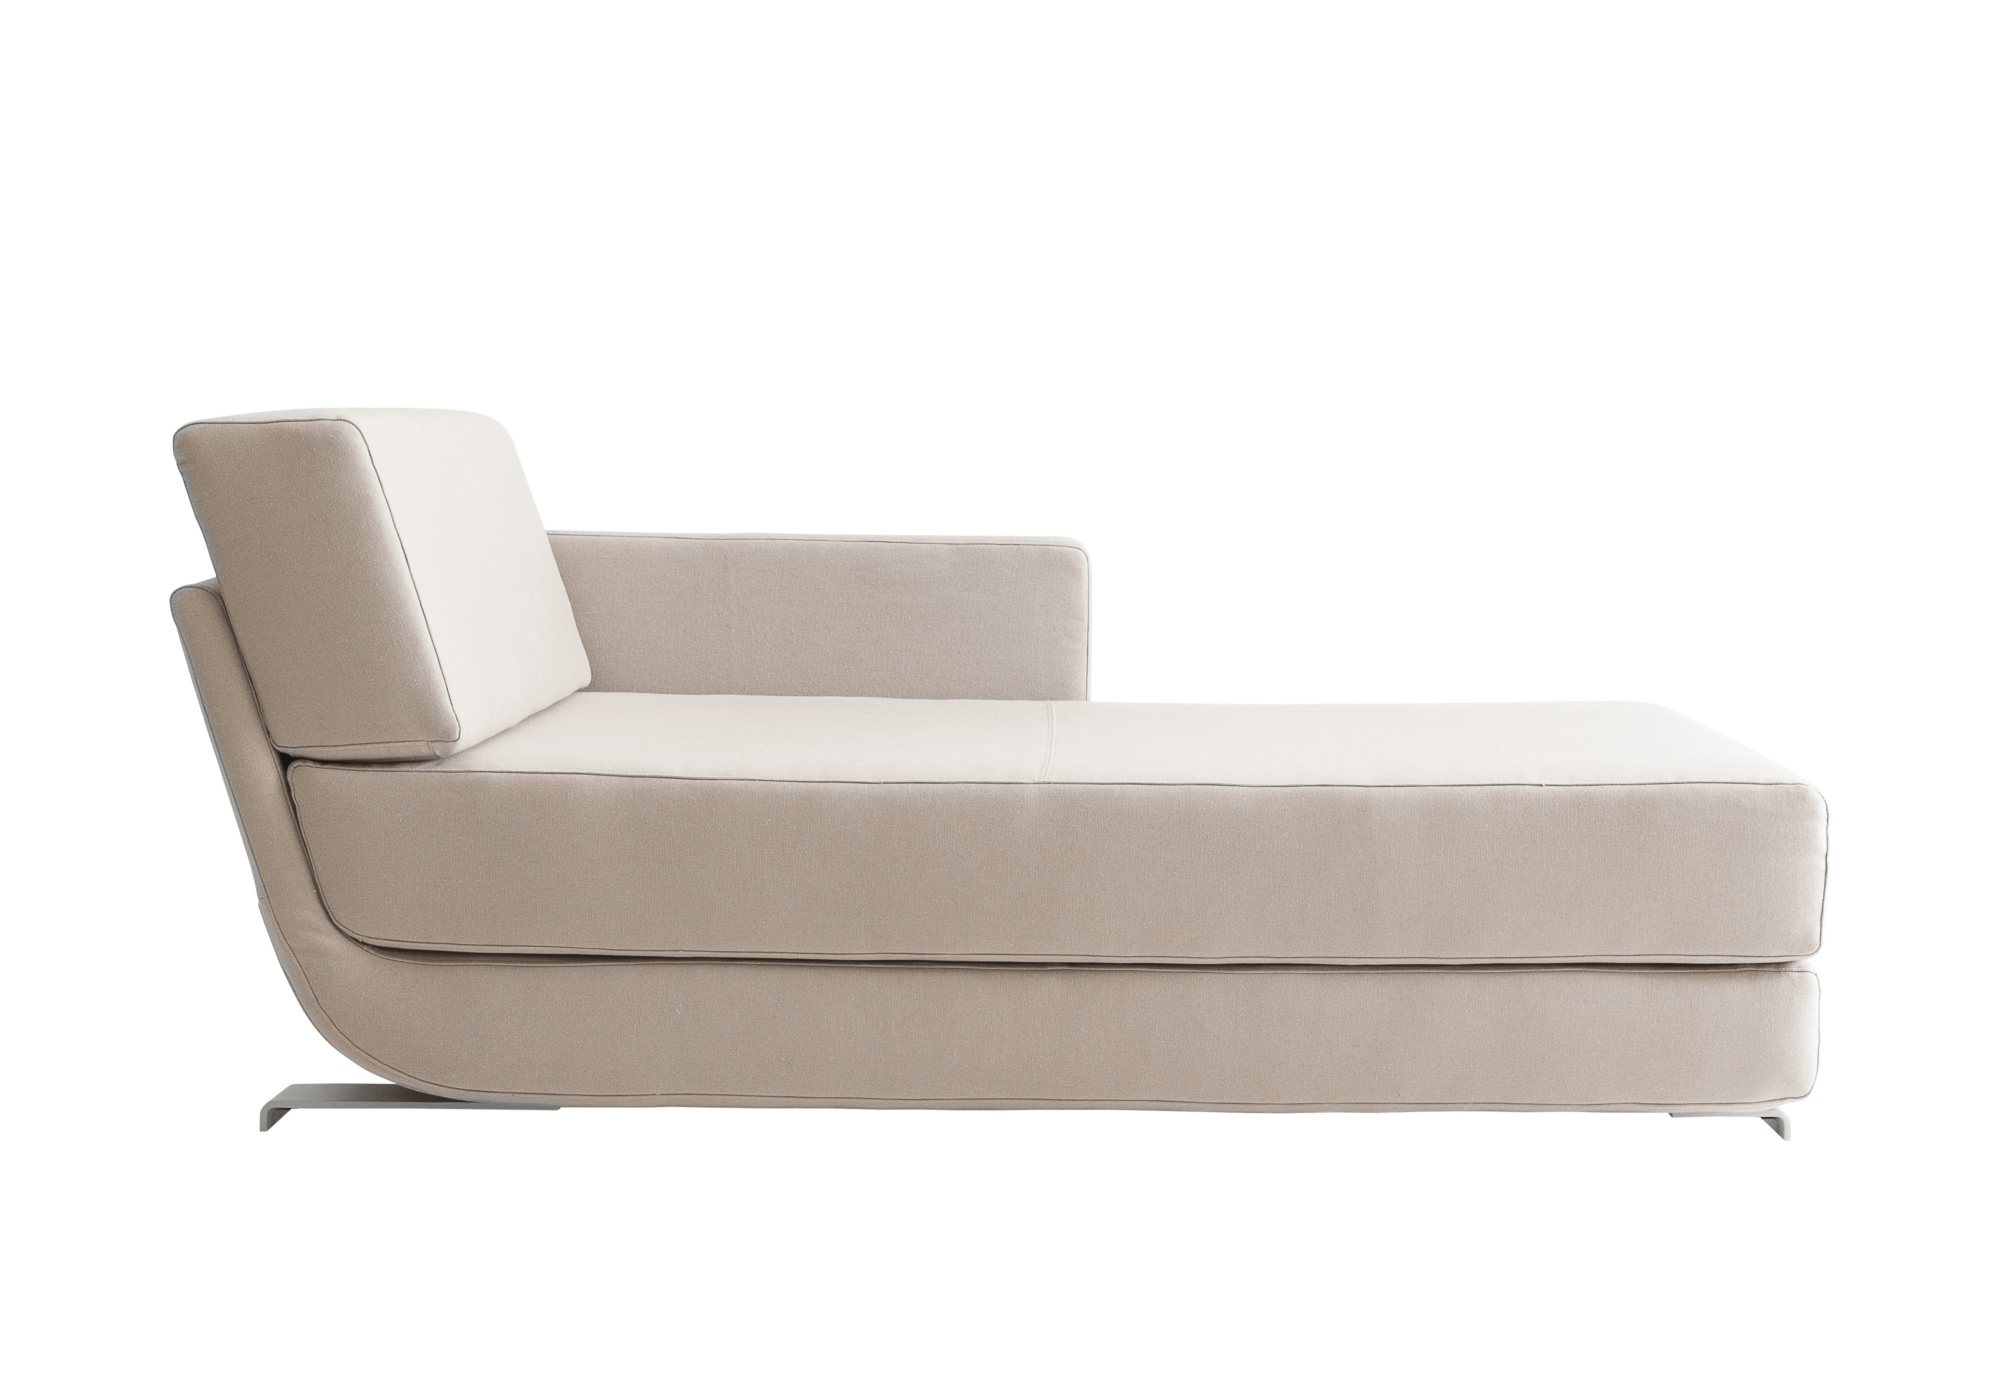 Chaise Longue Lounge Chaiselongue